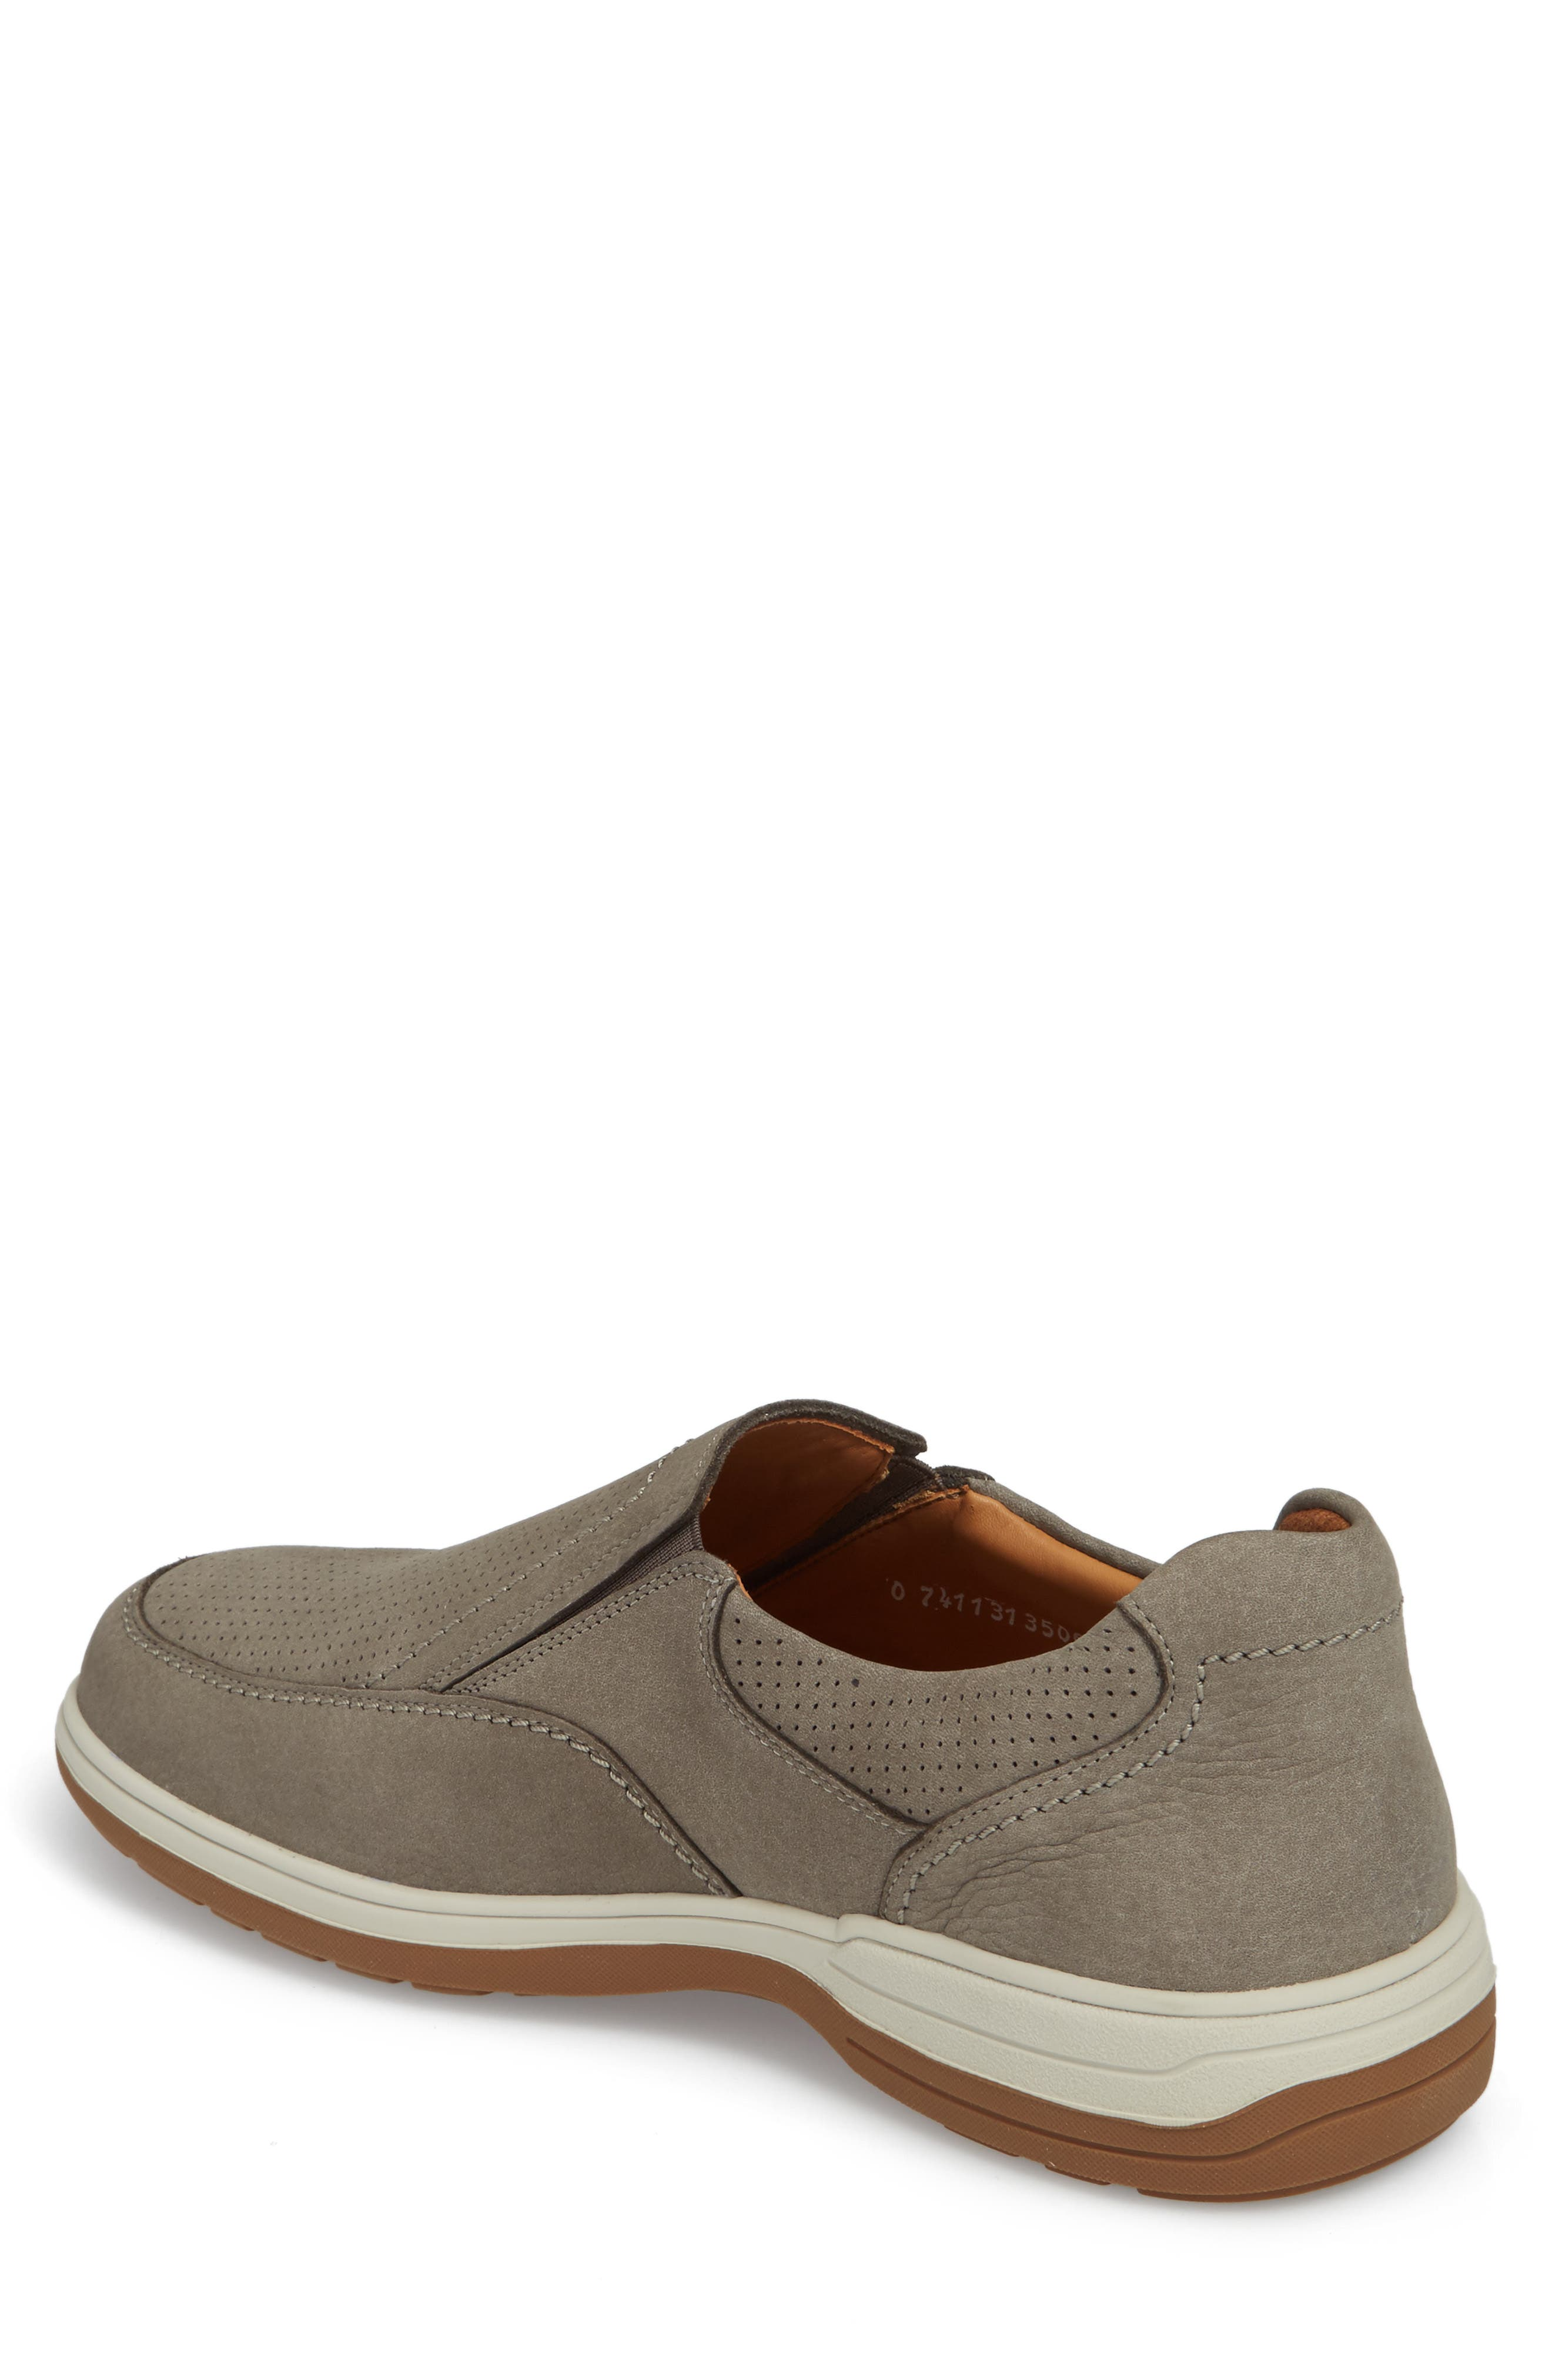 Davy Perforated Slip-On Sneaker,                             Alternate thumbnail 2, color,                             Grey